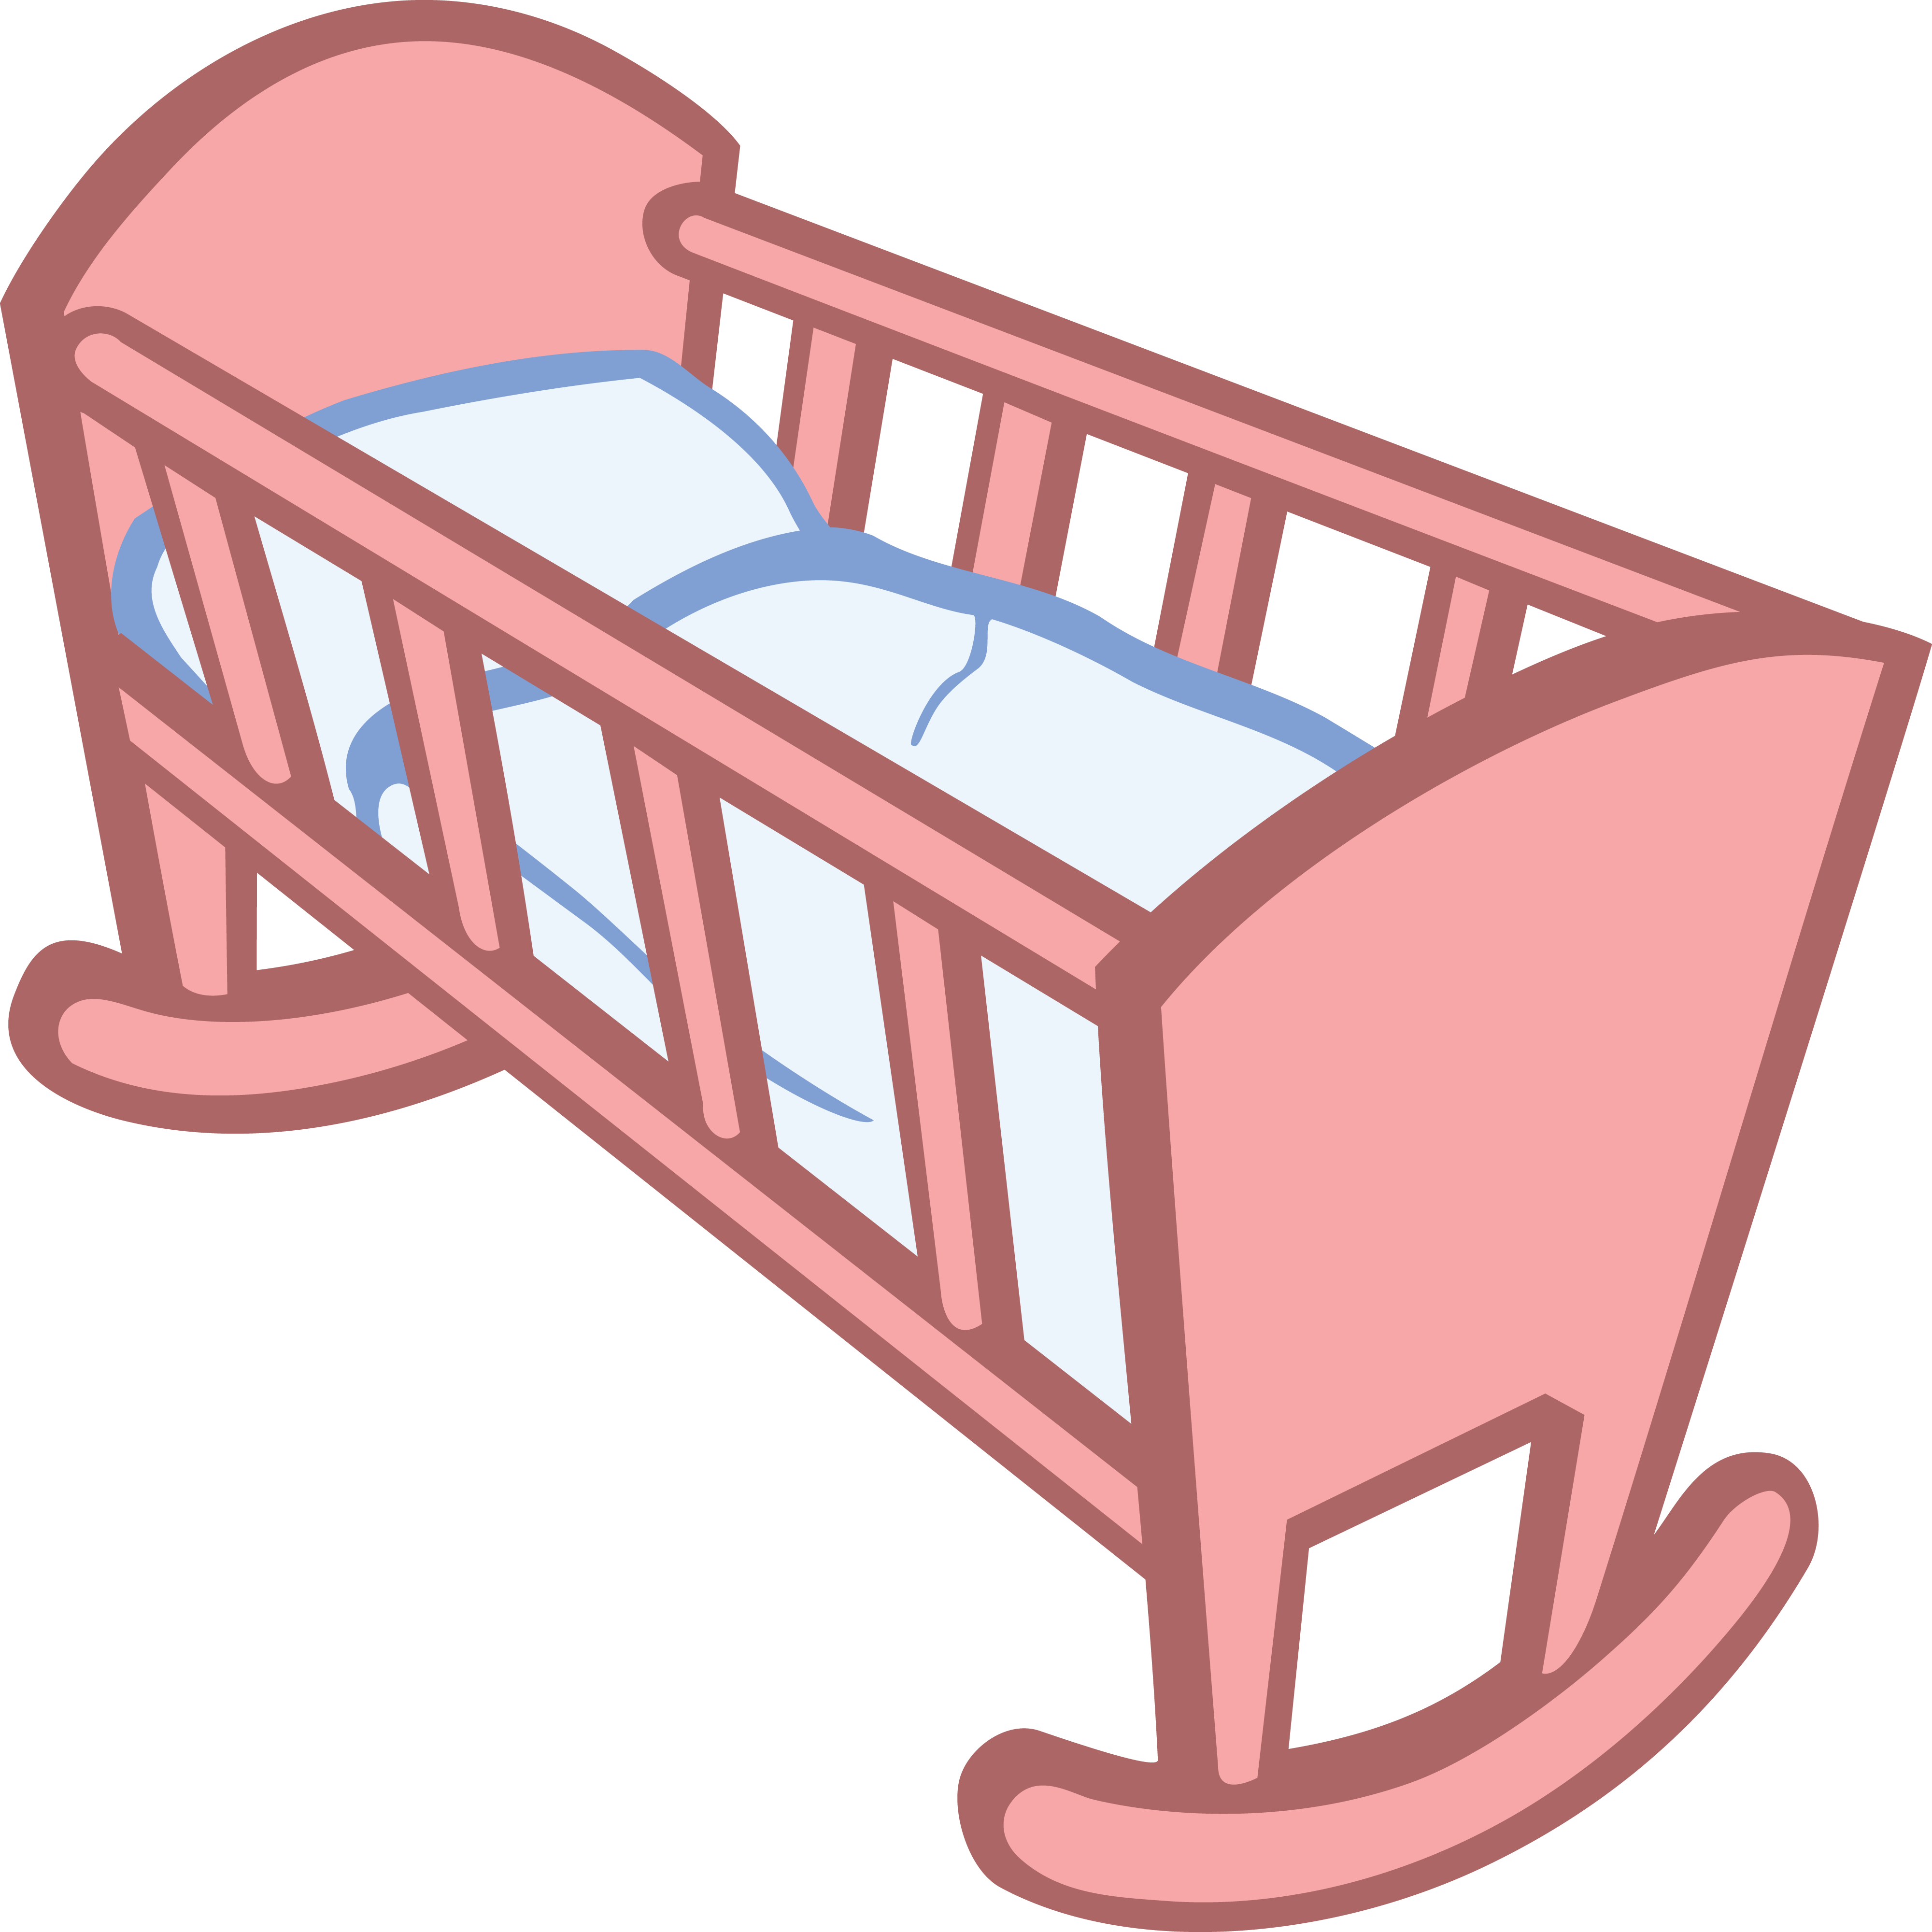 free clipart of a baby crib - free clipart of a baby crib